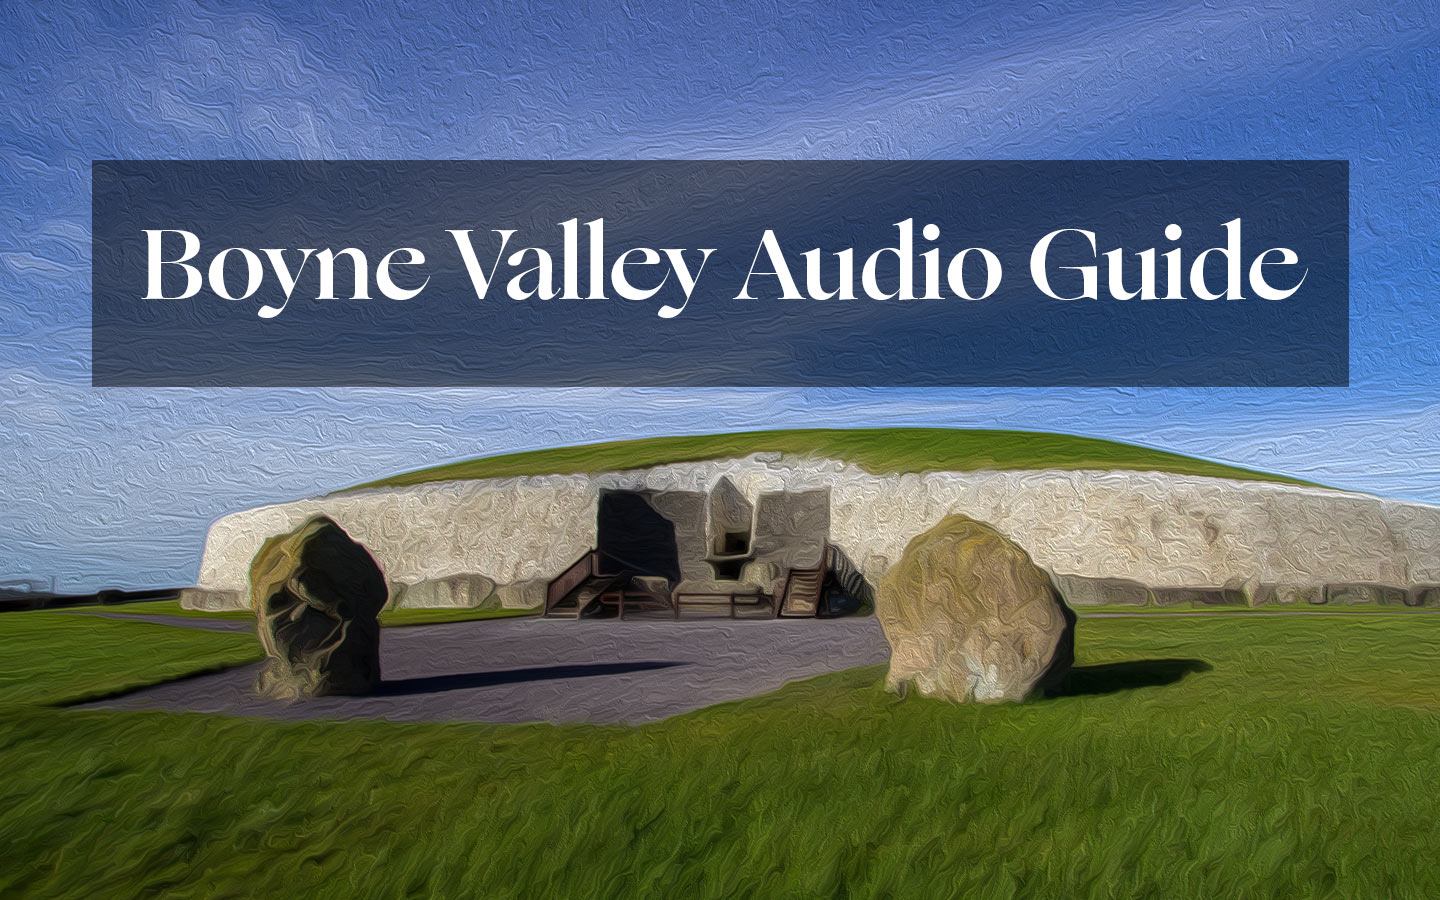 Self Guided Tour of the Boyne Valley audio guide